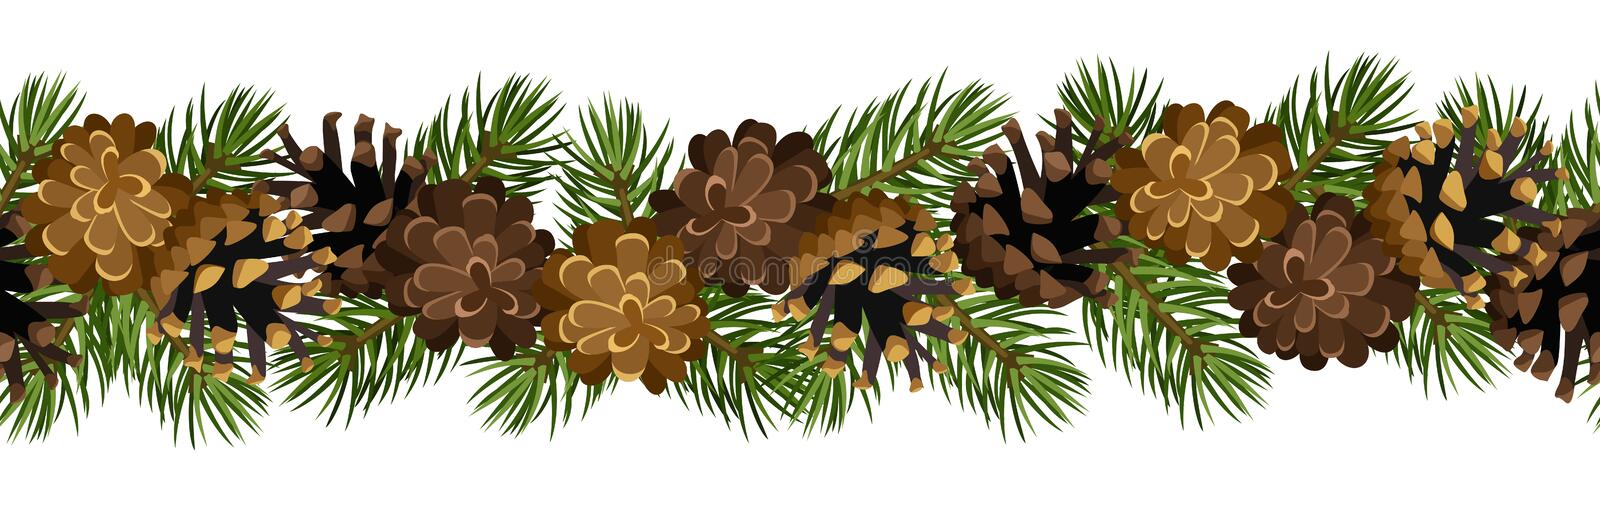 Download Horizontal Seamless Background With Cones Stock Images - Image: 28333064